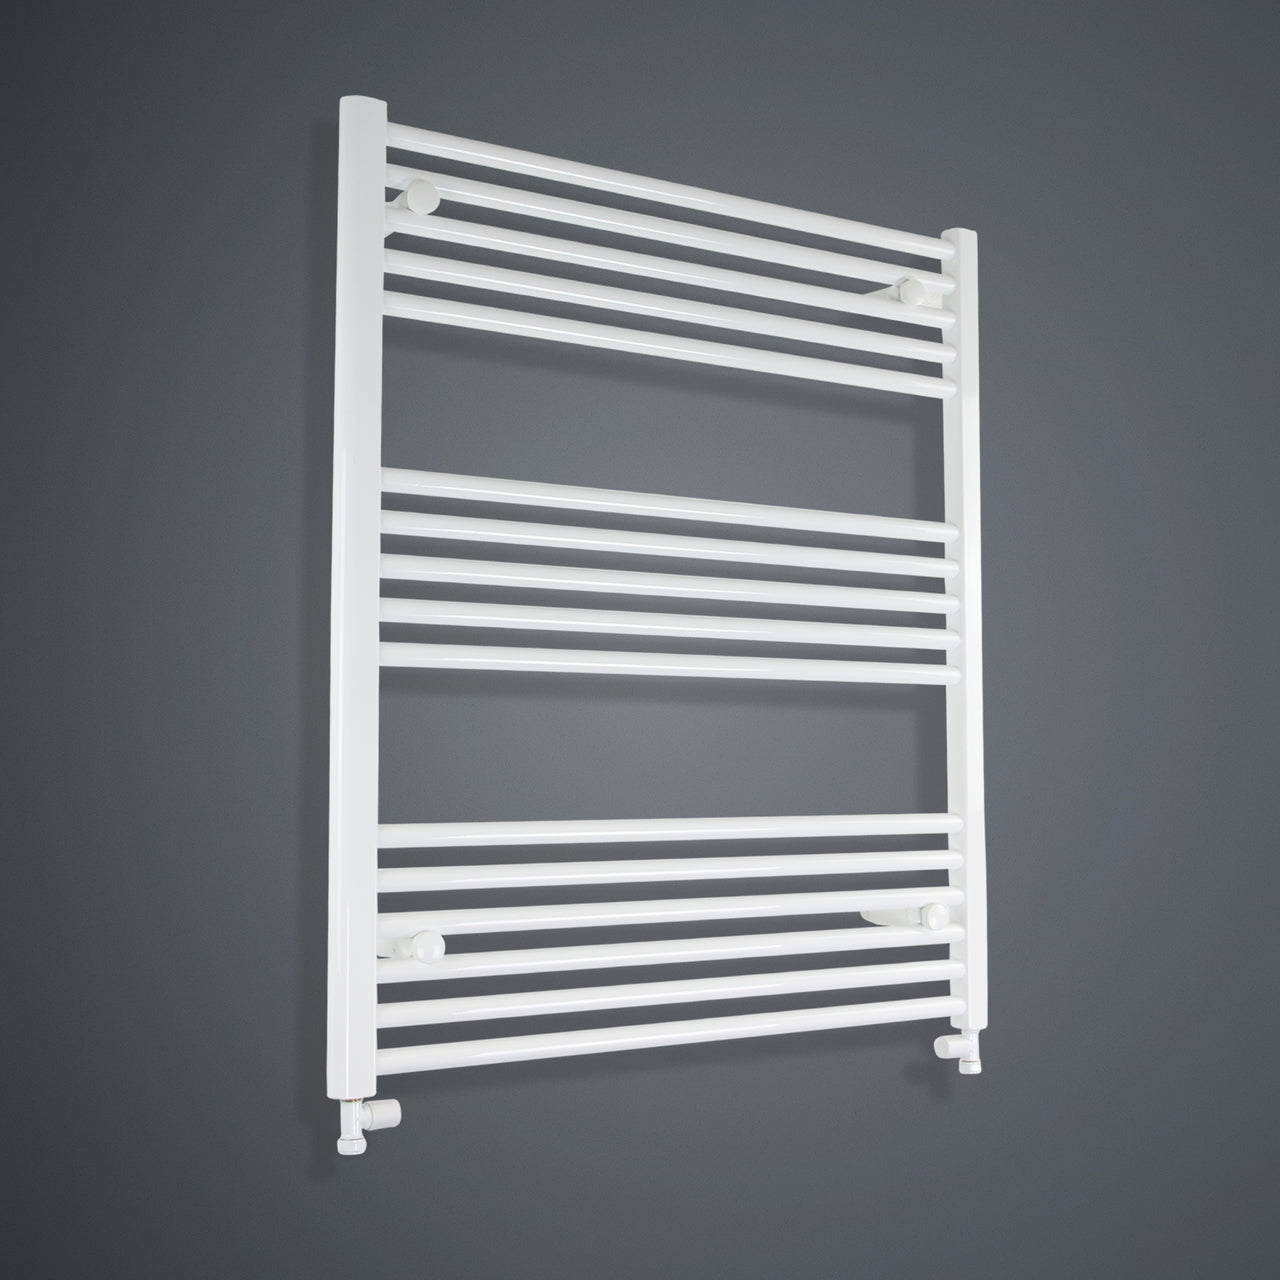 800mm Wide 900mm High Flat White Heated Towel Rail Radiator HTR,With Straight Valve